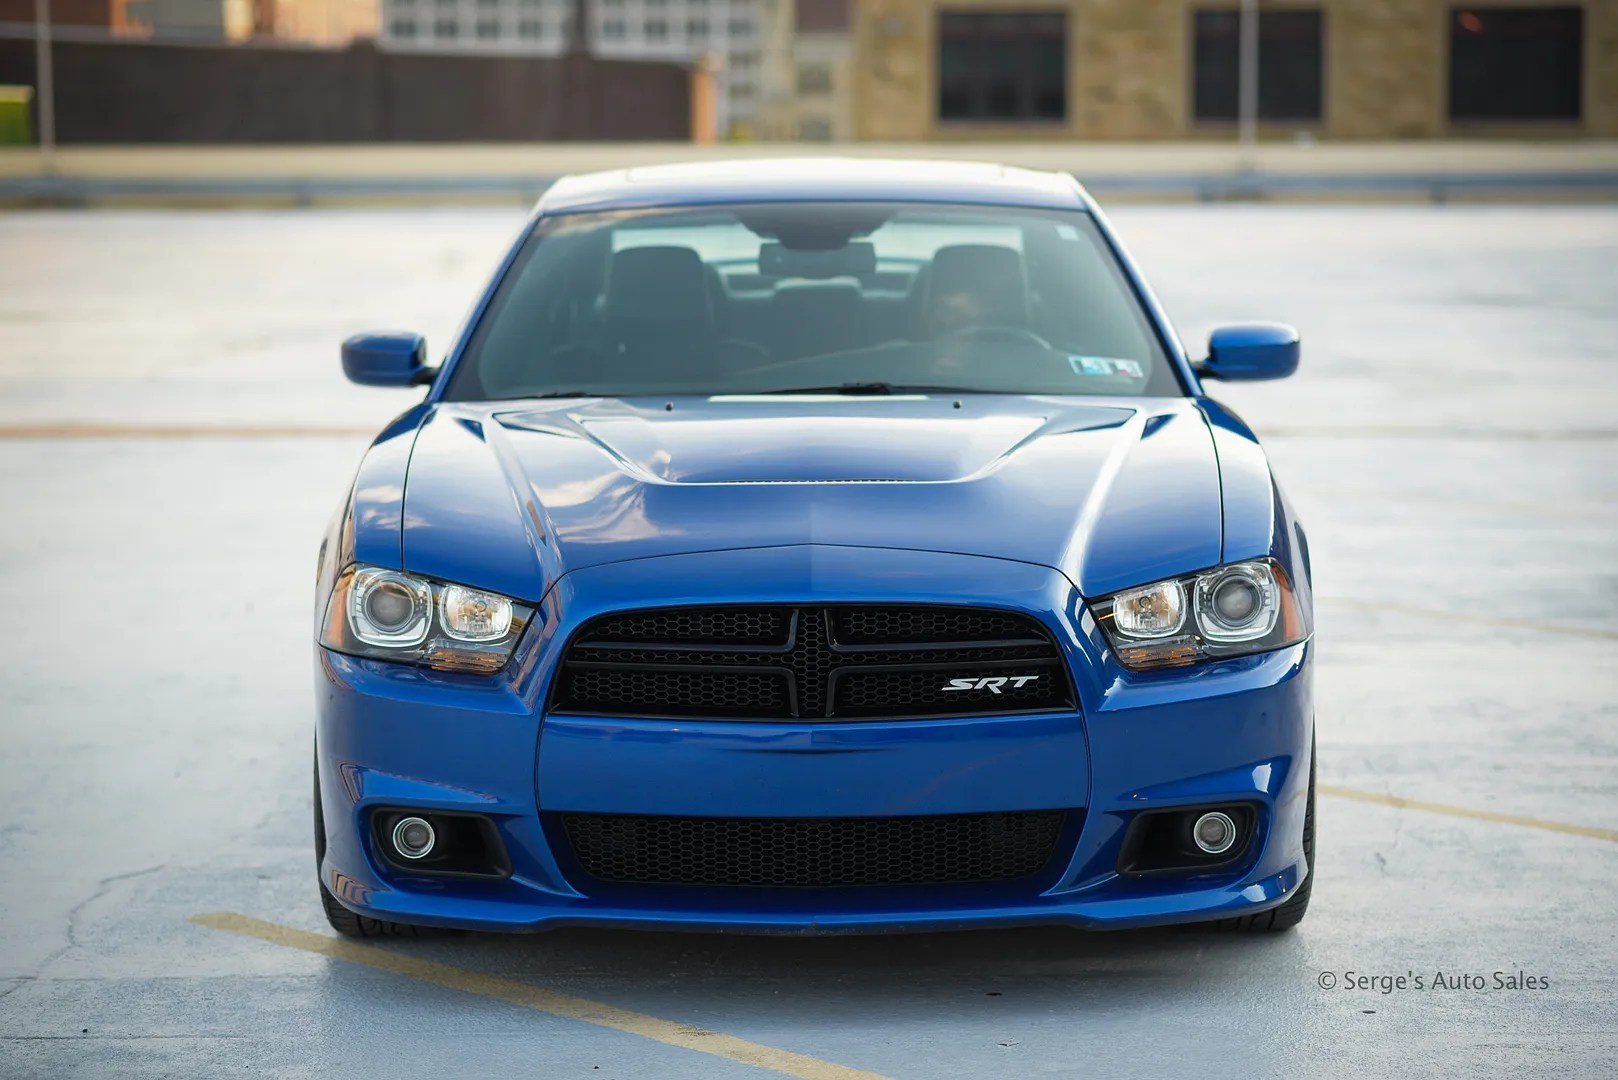 photo charger-serges-auto-sales-northeast-pa-2012-srt8--12_zps3qxaeom1.jpg